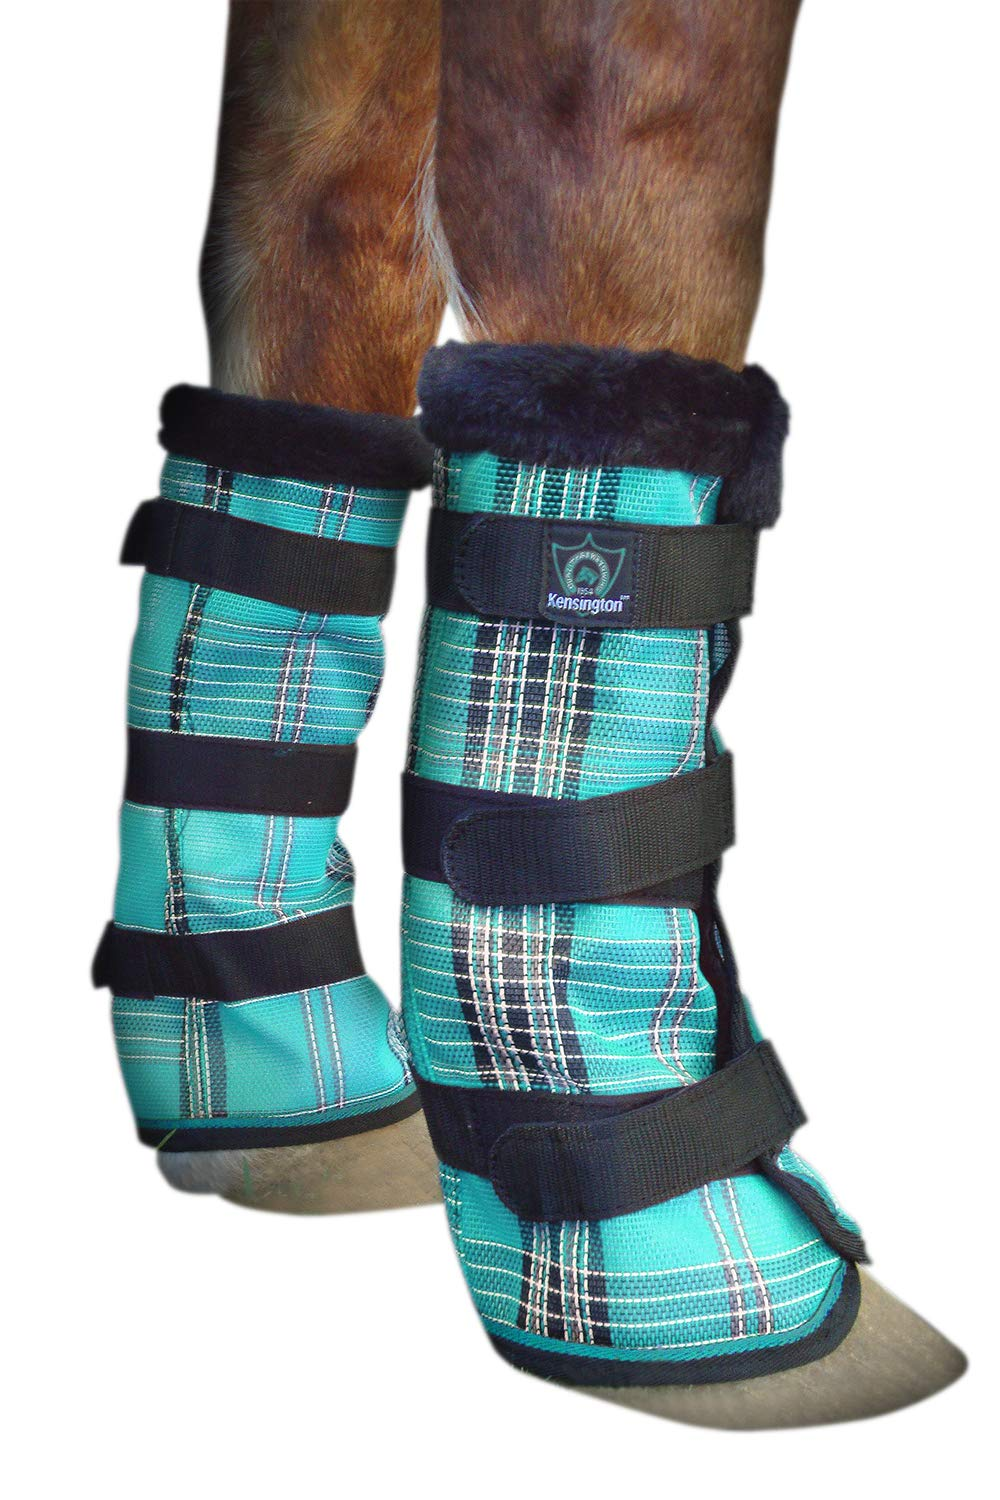 Kensington Non Collapsing Draft Horse Fly Boots with Comfortable Fleece Trim - Stay-Up Technology - Protection from Insect Bites and UV Rays - Sold in Pairs of 2